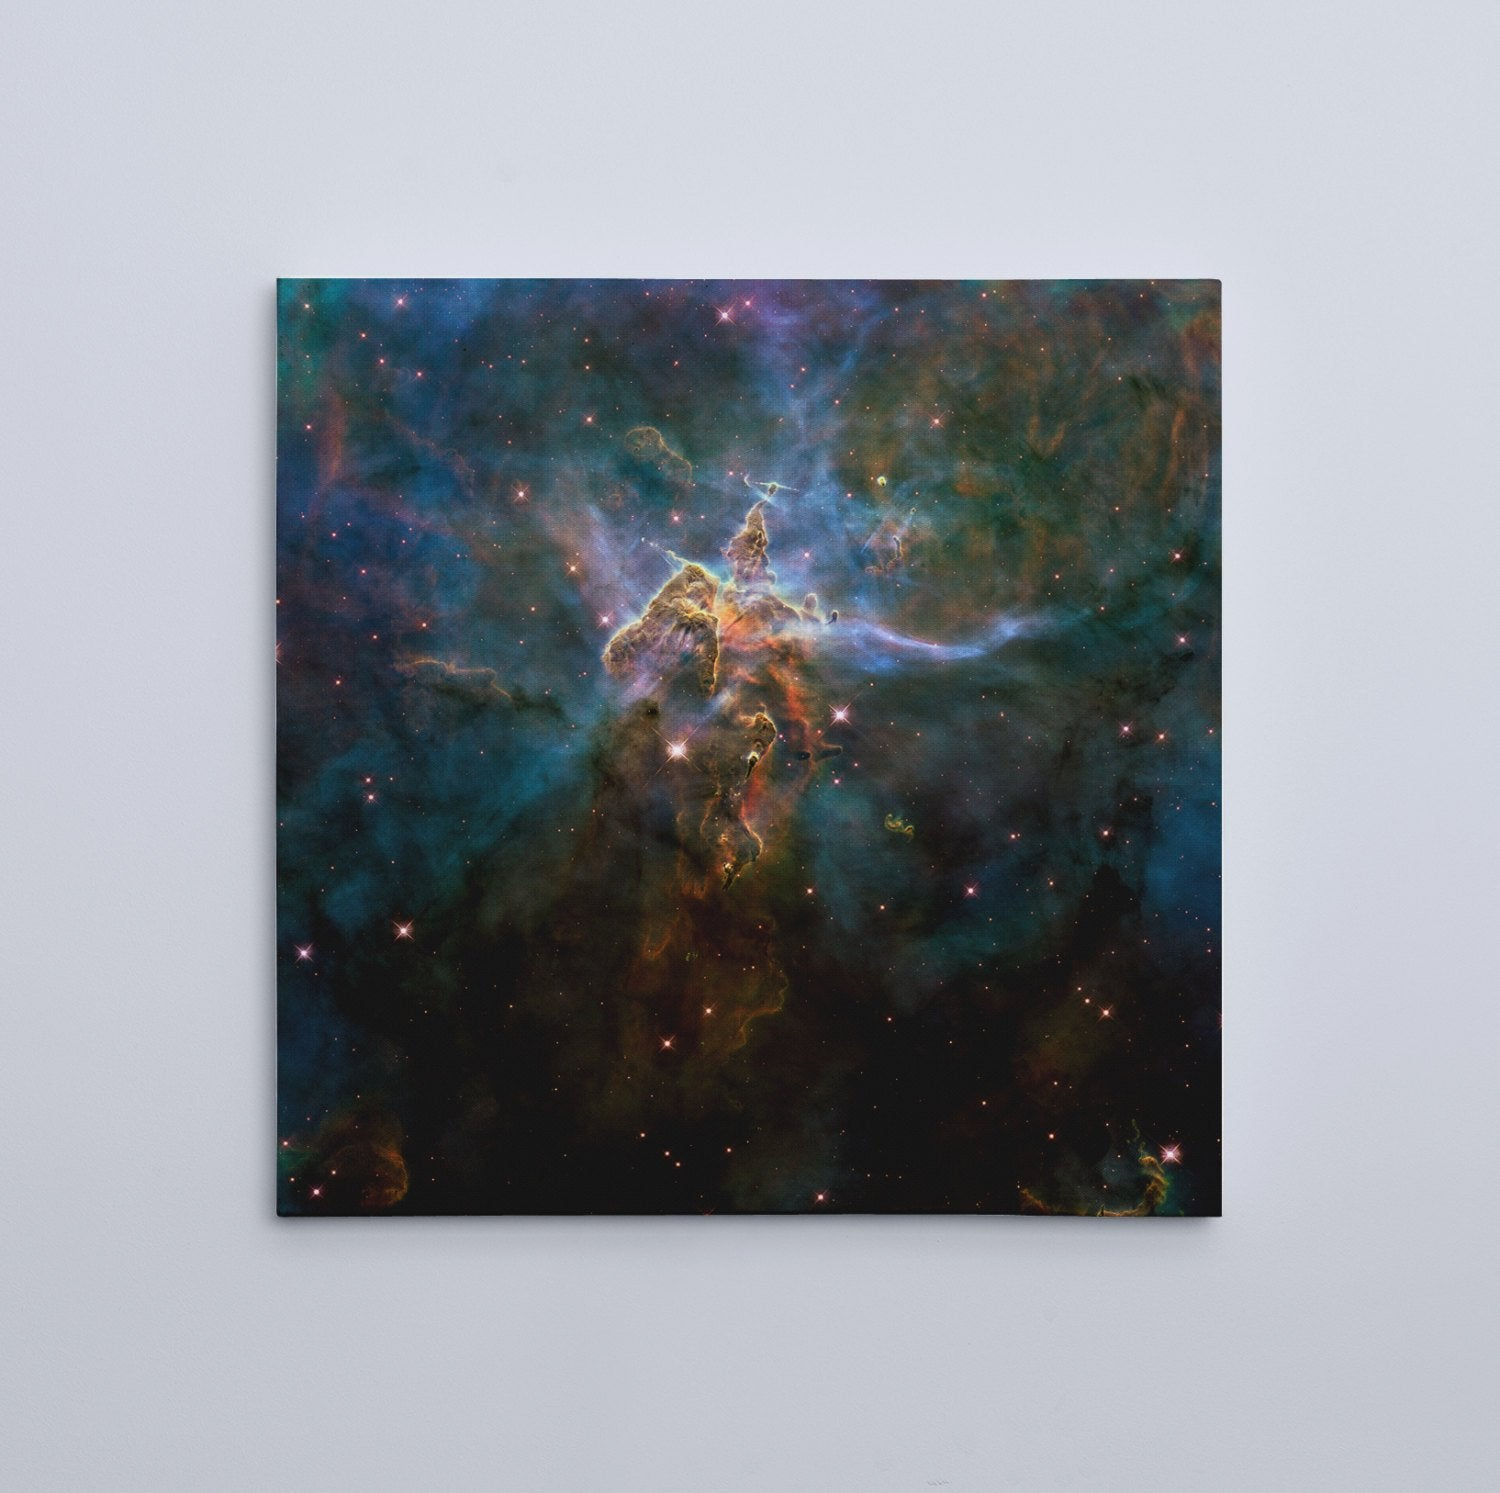 "Mystic Mountain, HD Hubble Image (36"" x 36"") - Canvas Wrap Print"